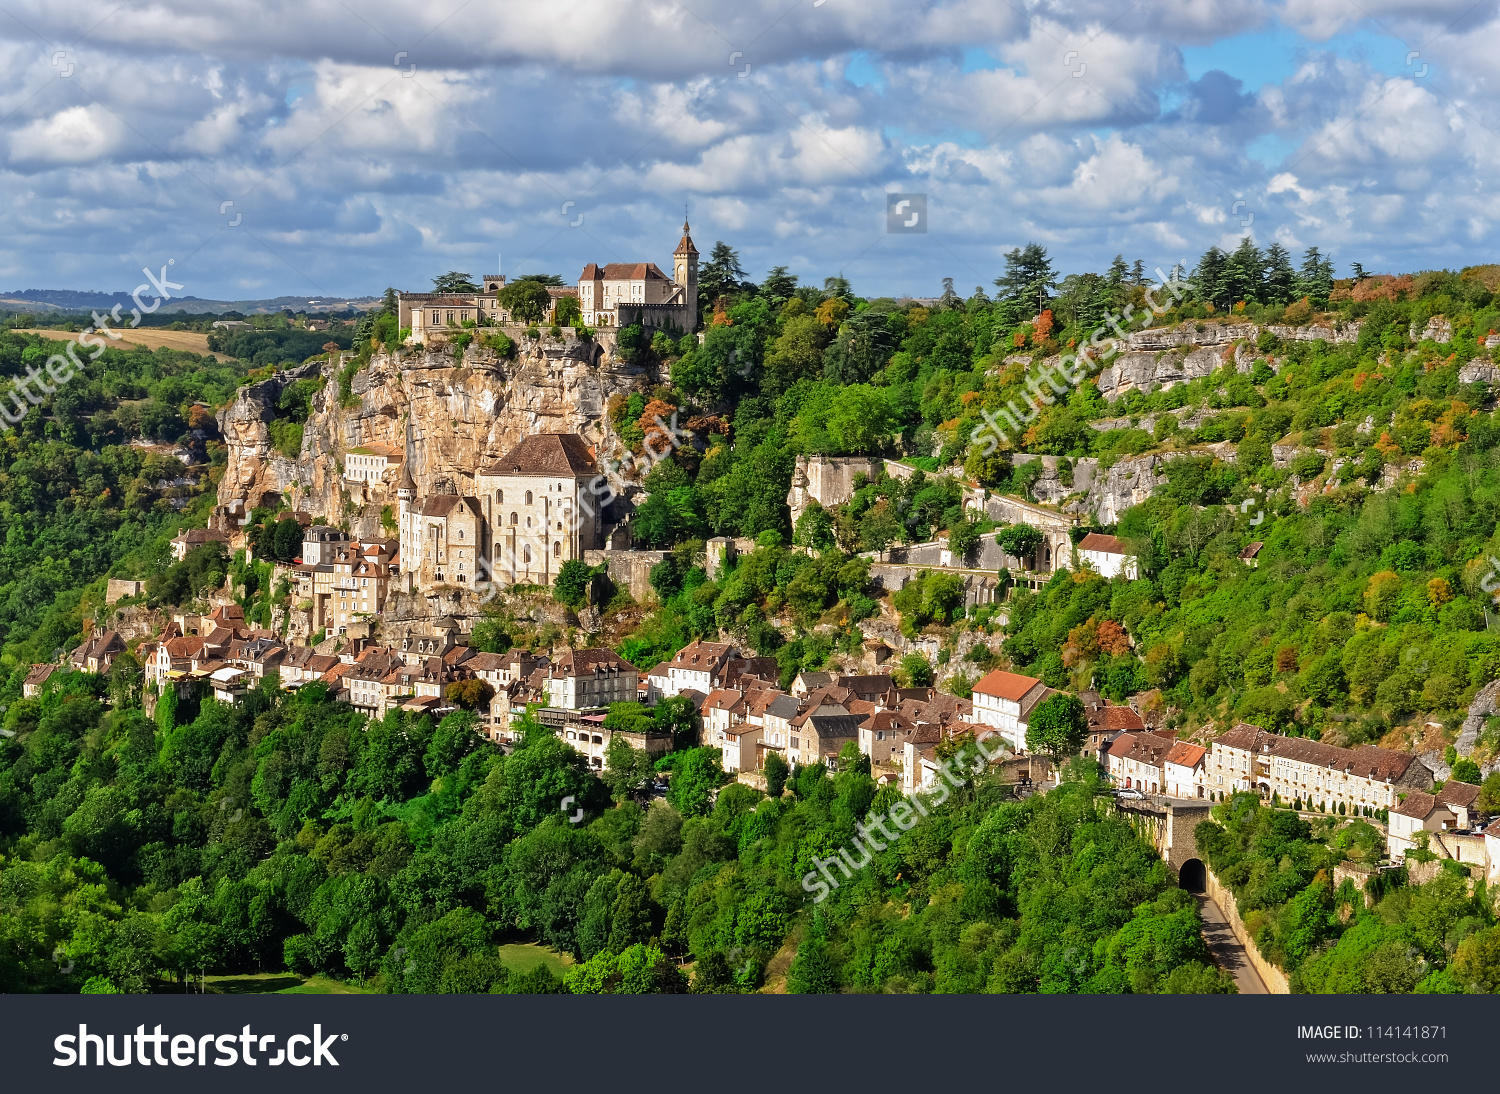 Rocamadour Village Wide View, France Stock Photo 114141871.